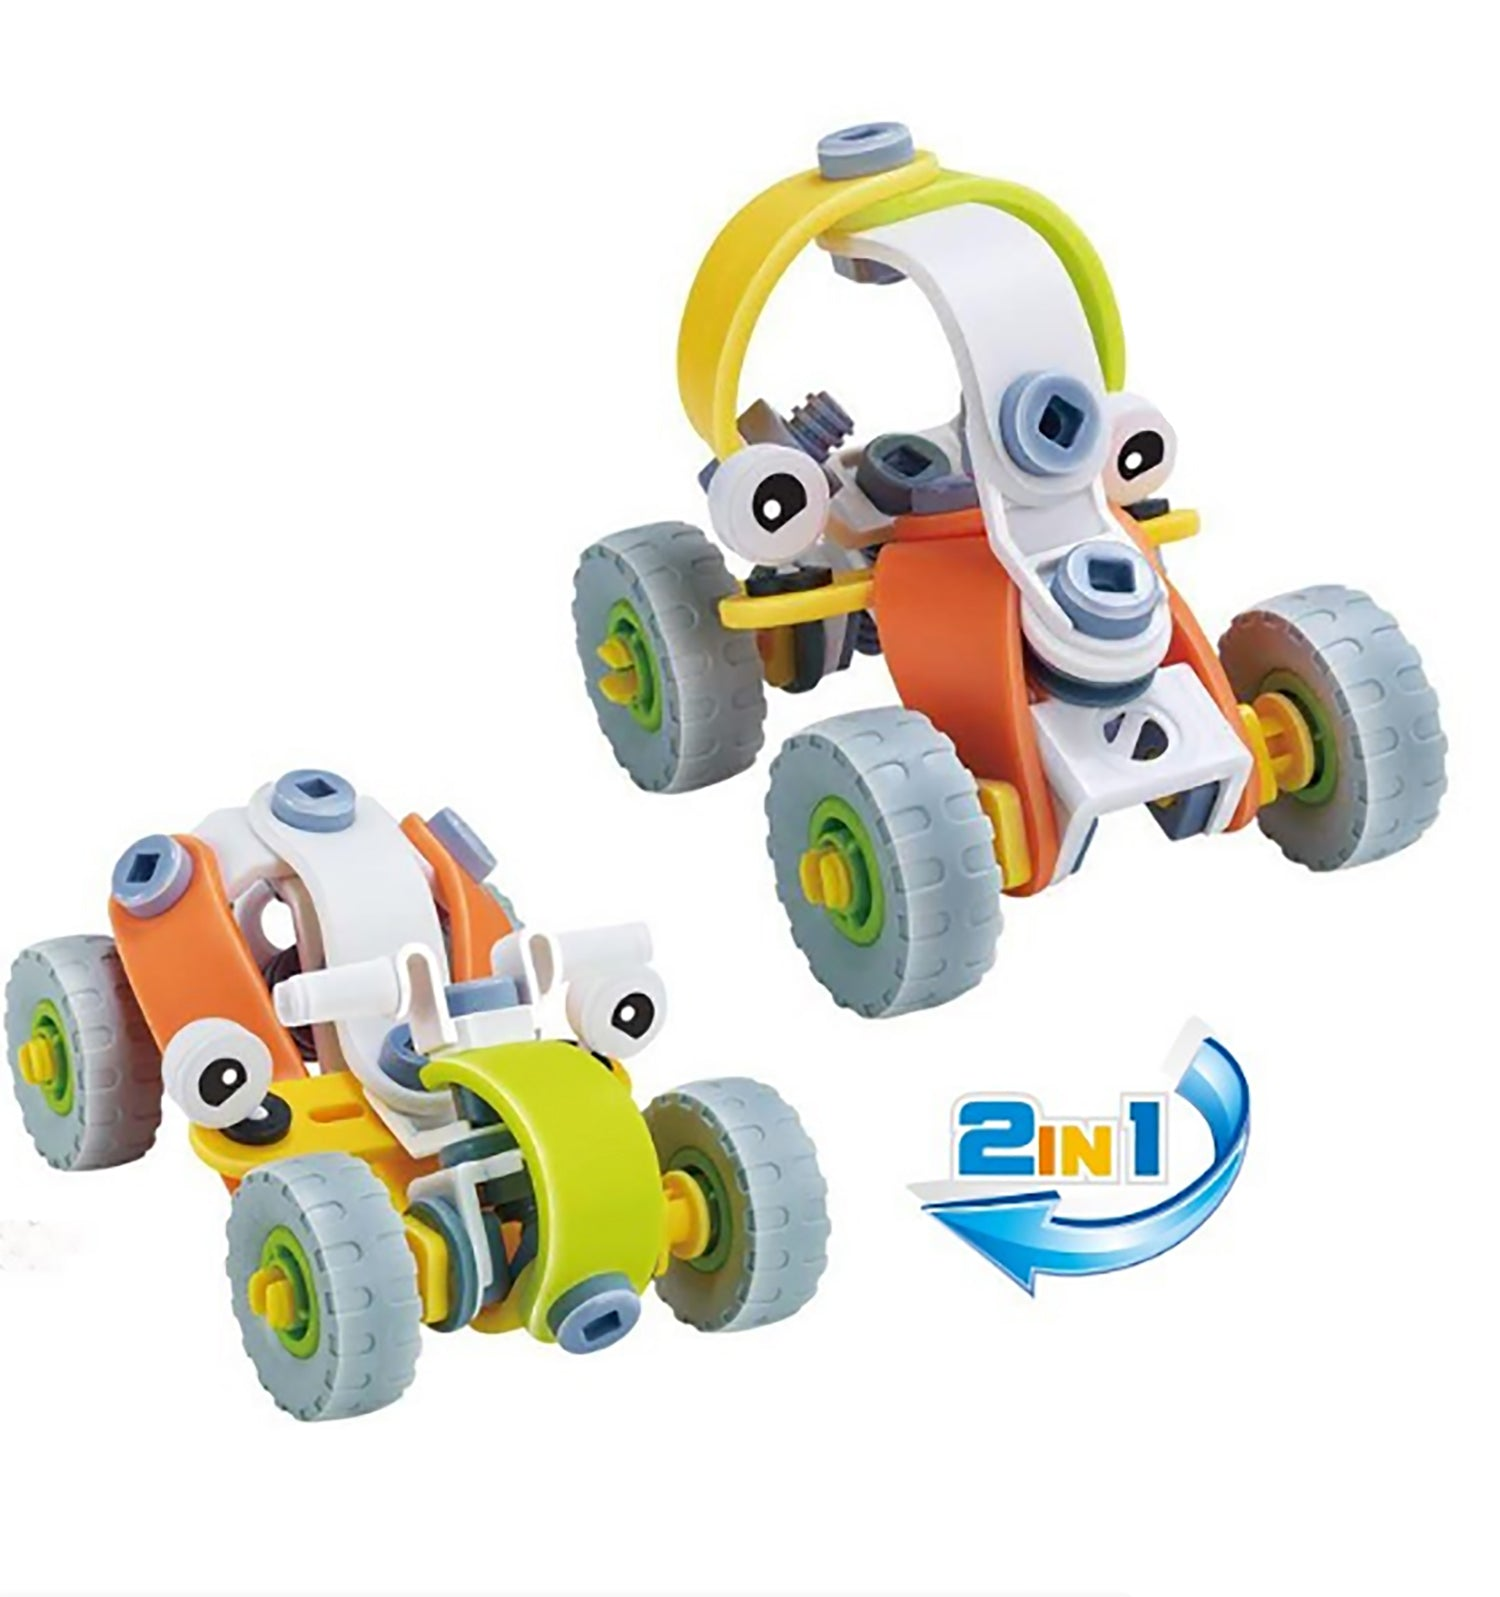 "Buy One Get One Free: Educational 2-in-1 STEM Building Toys - Add any 2 and Enter Promo Code ""ToyBogo"" to Score 1 Free - Ships Same/Next Day!"